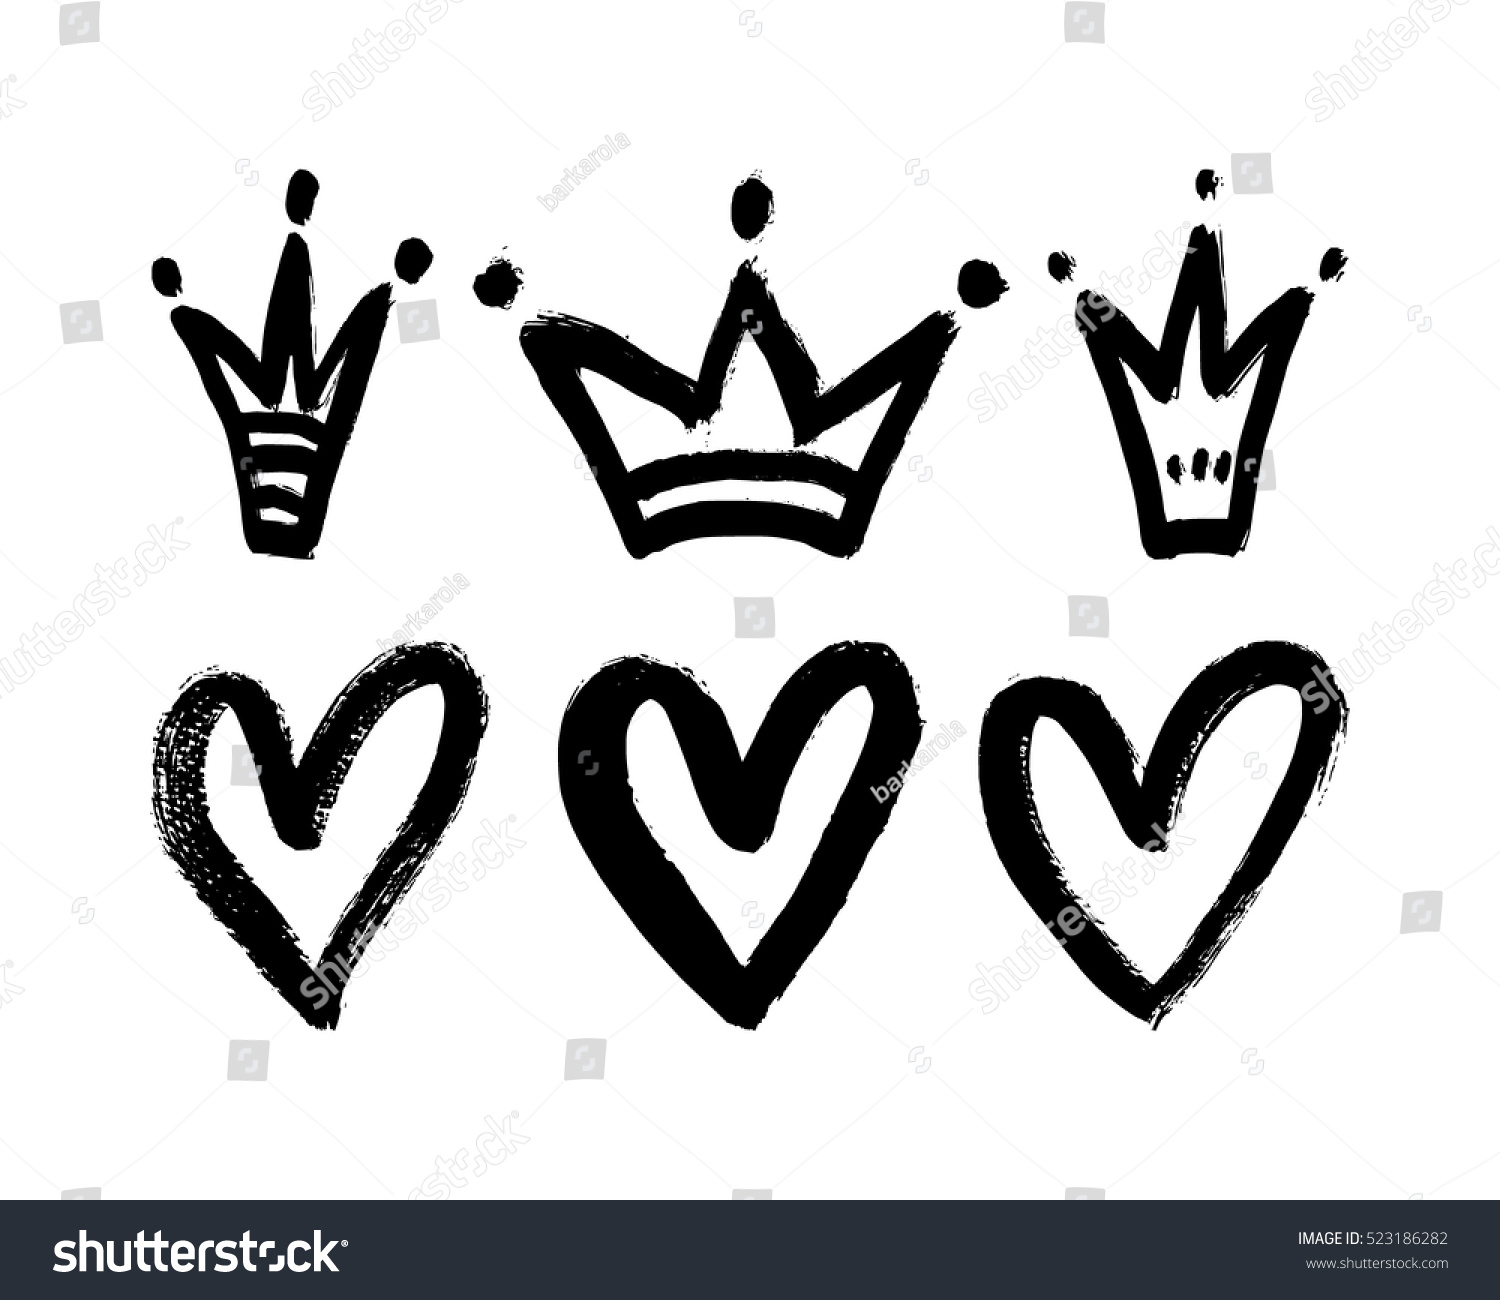 how to draw a heart with a crown